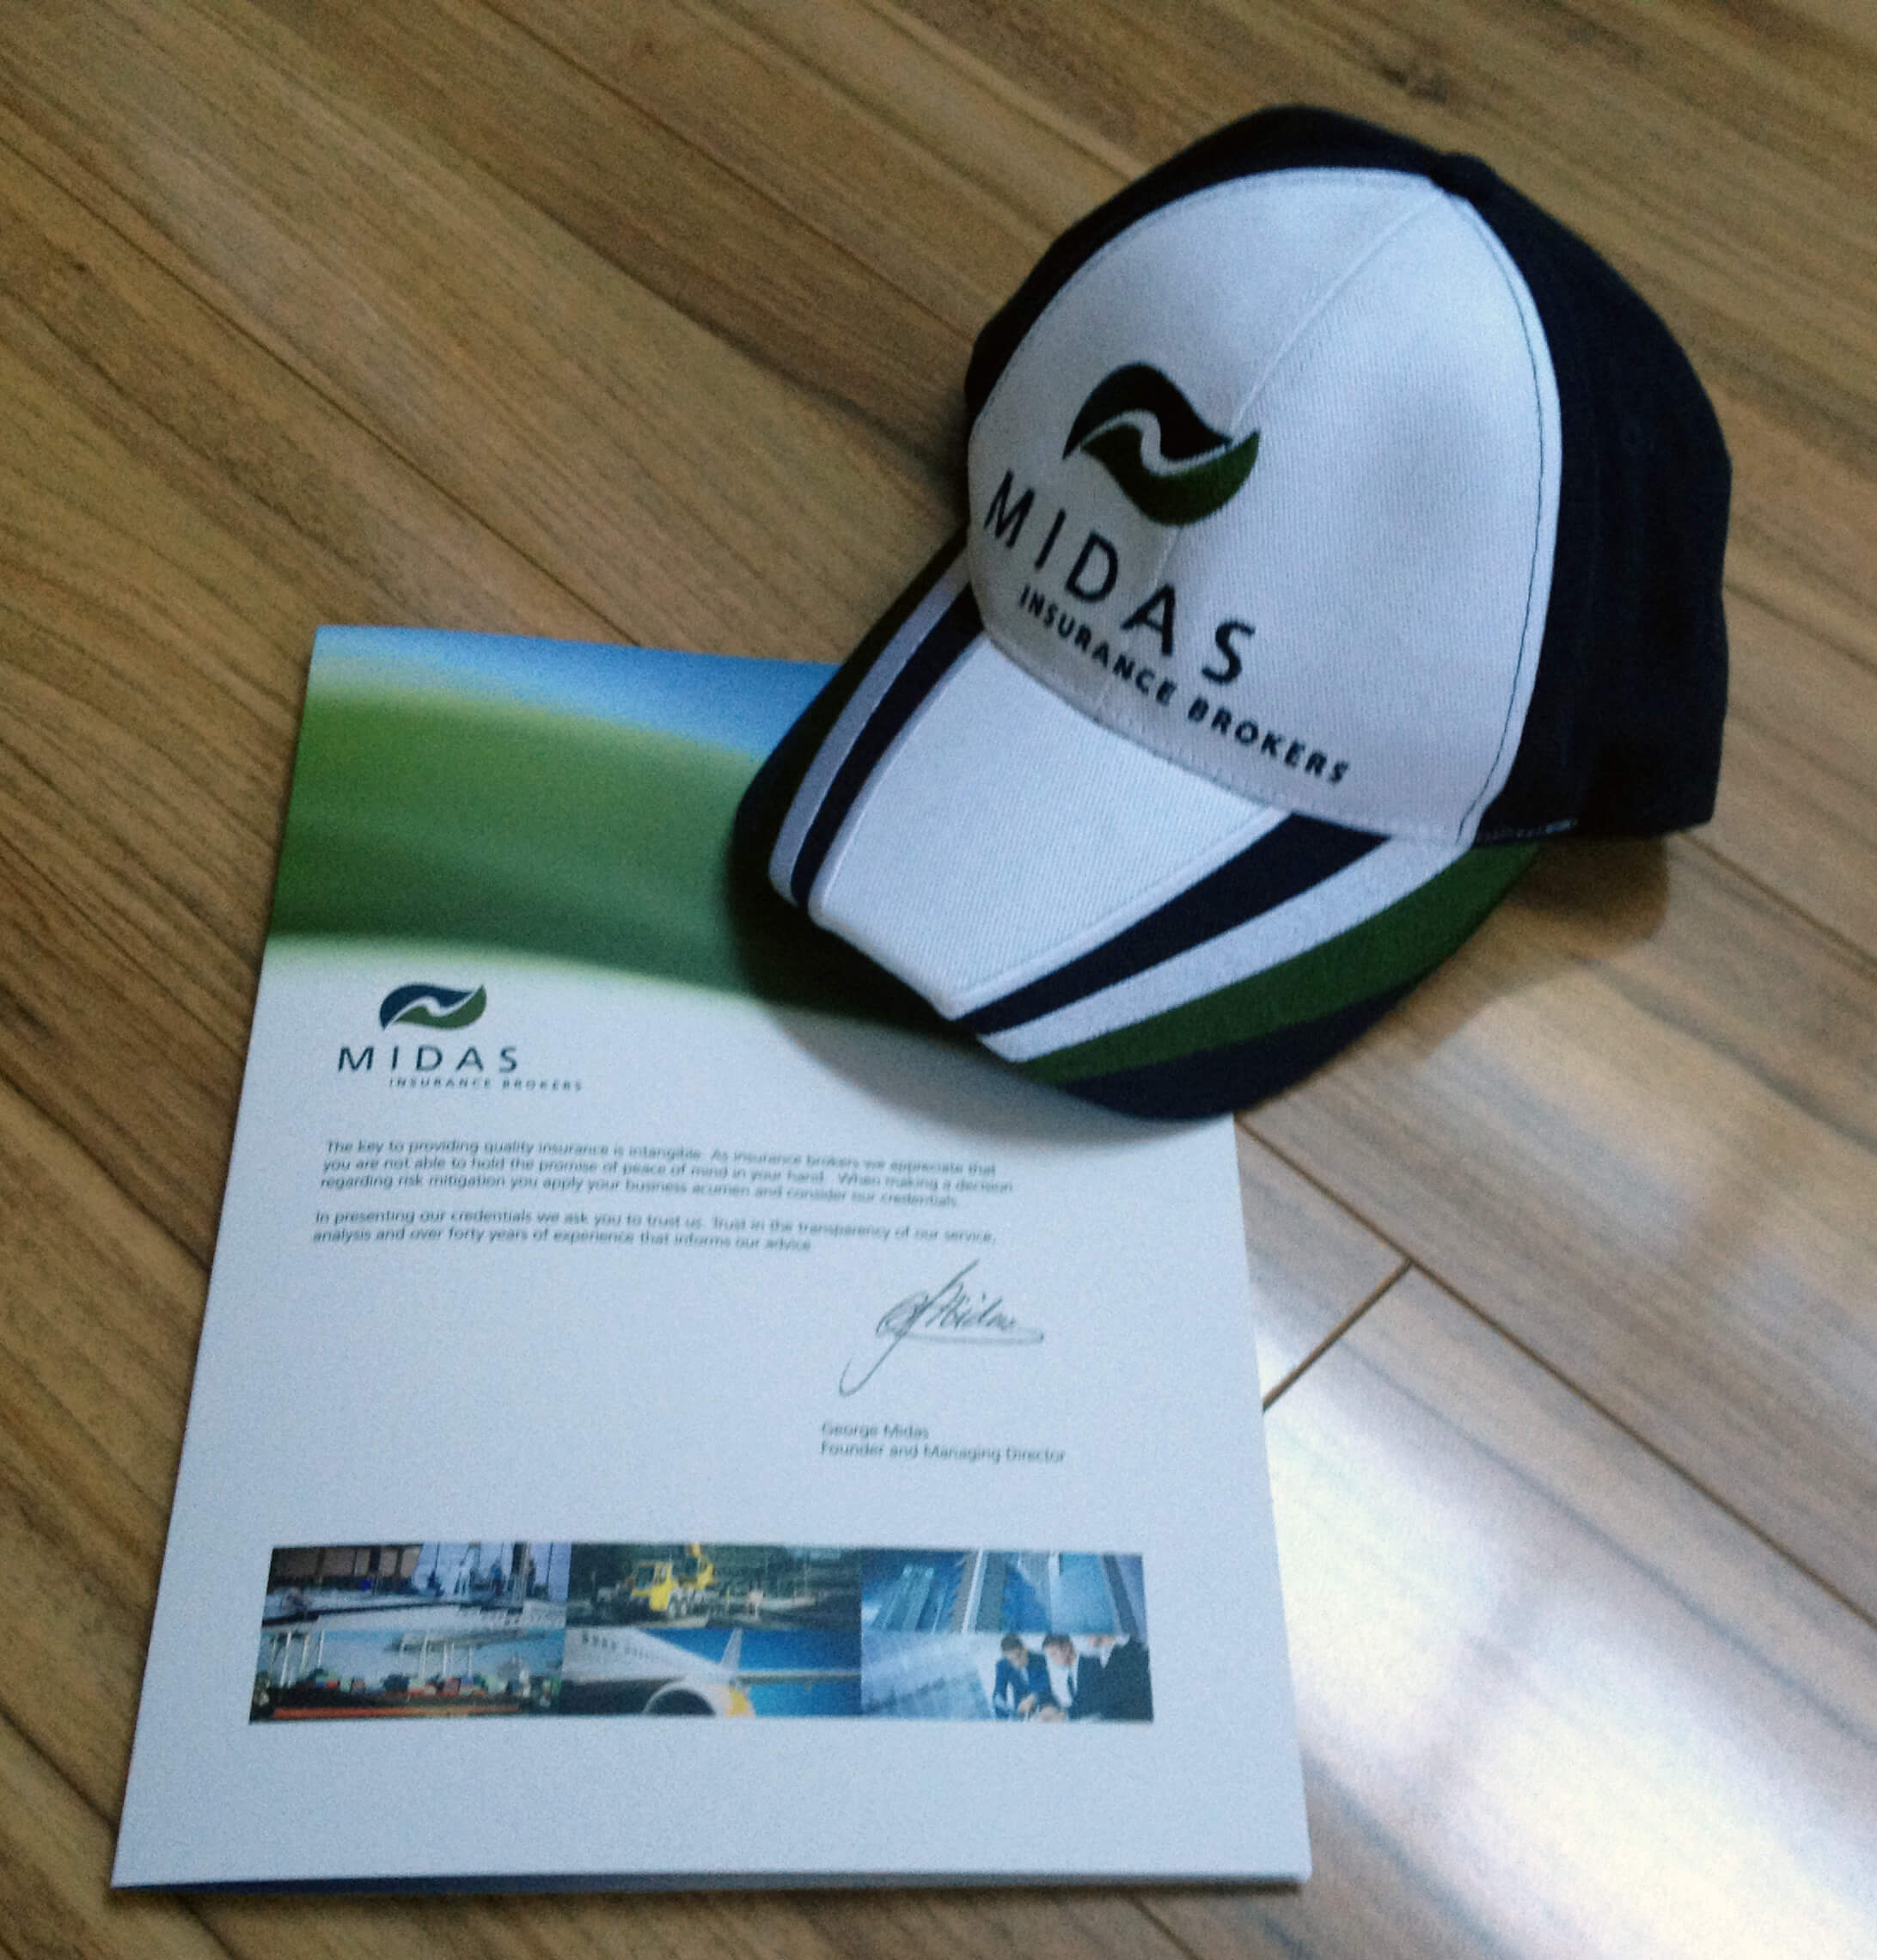 Midas Insurance Brochure & Cap